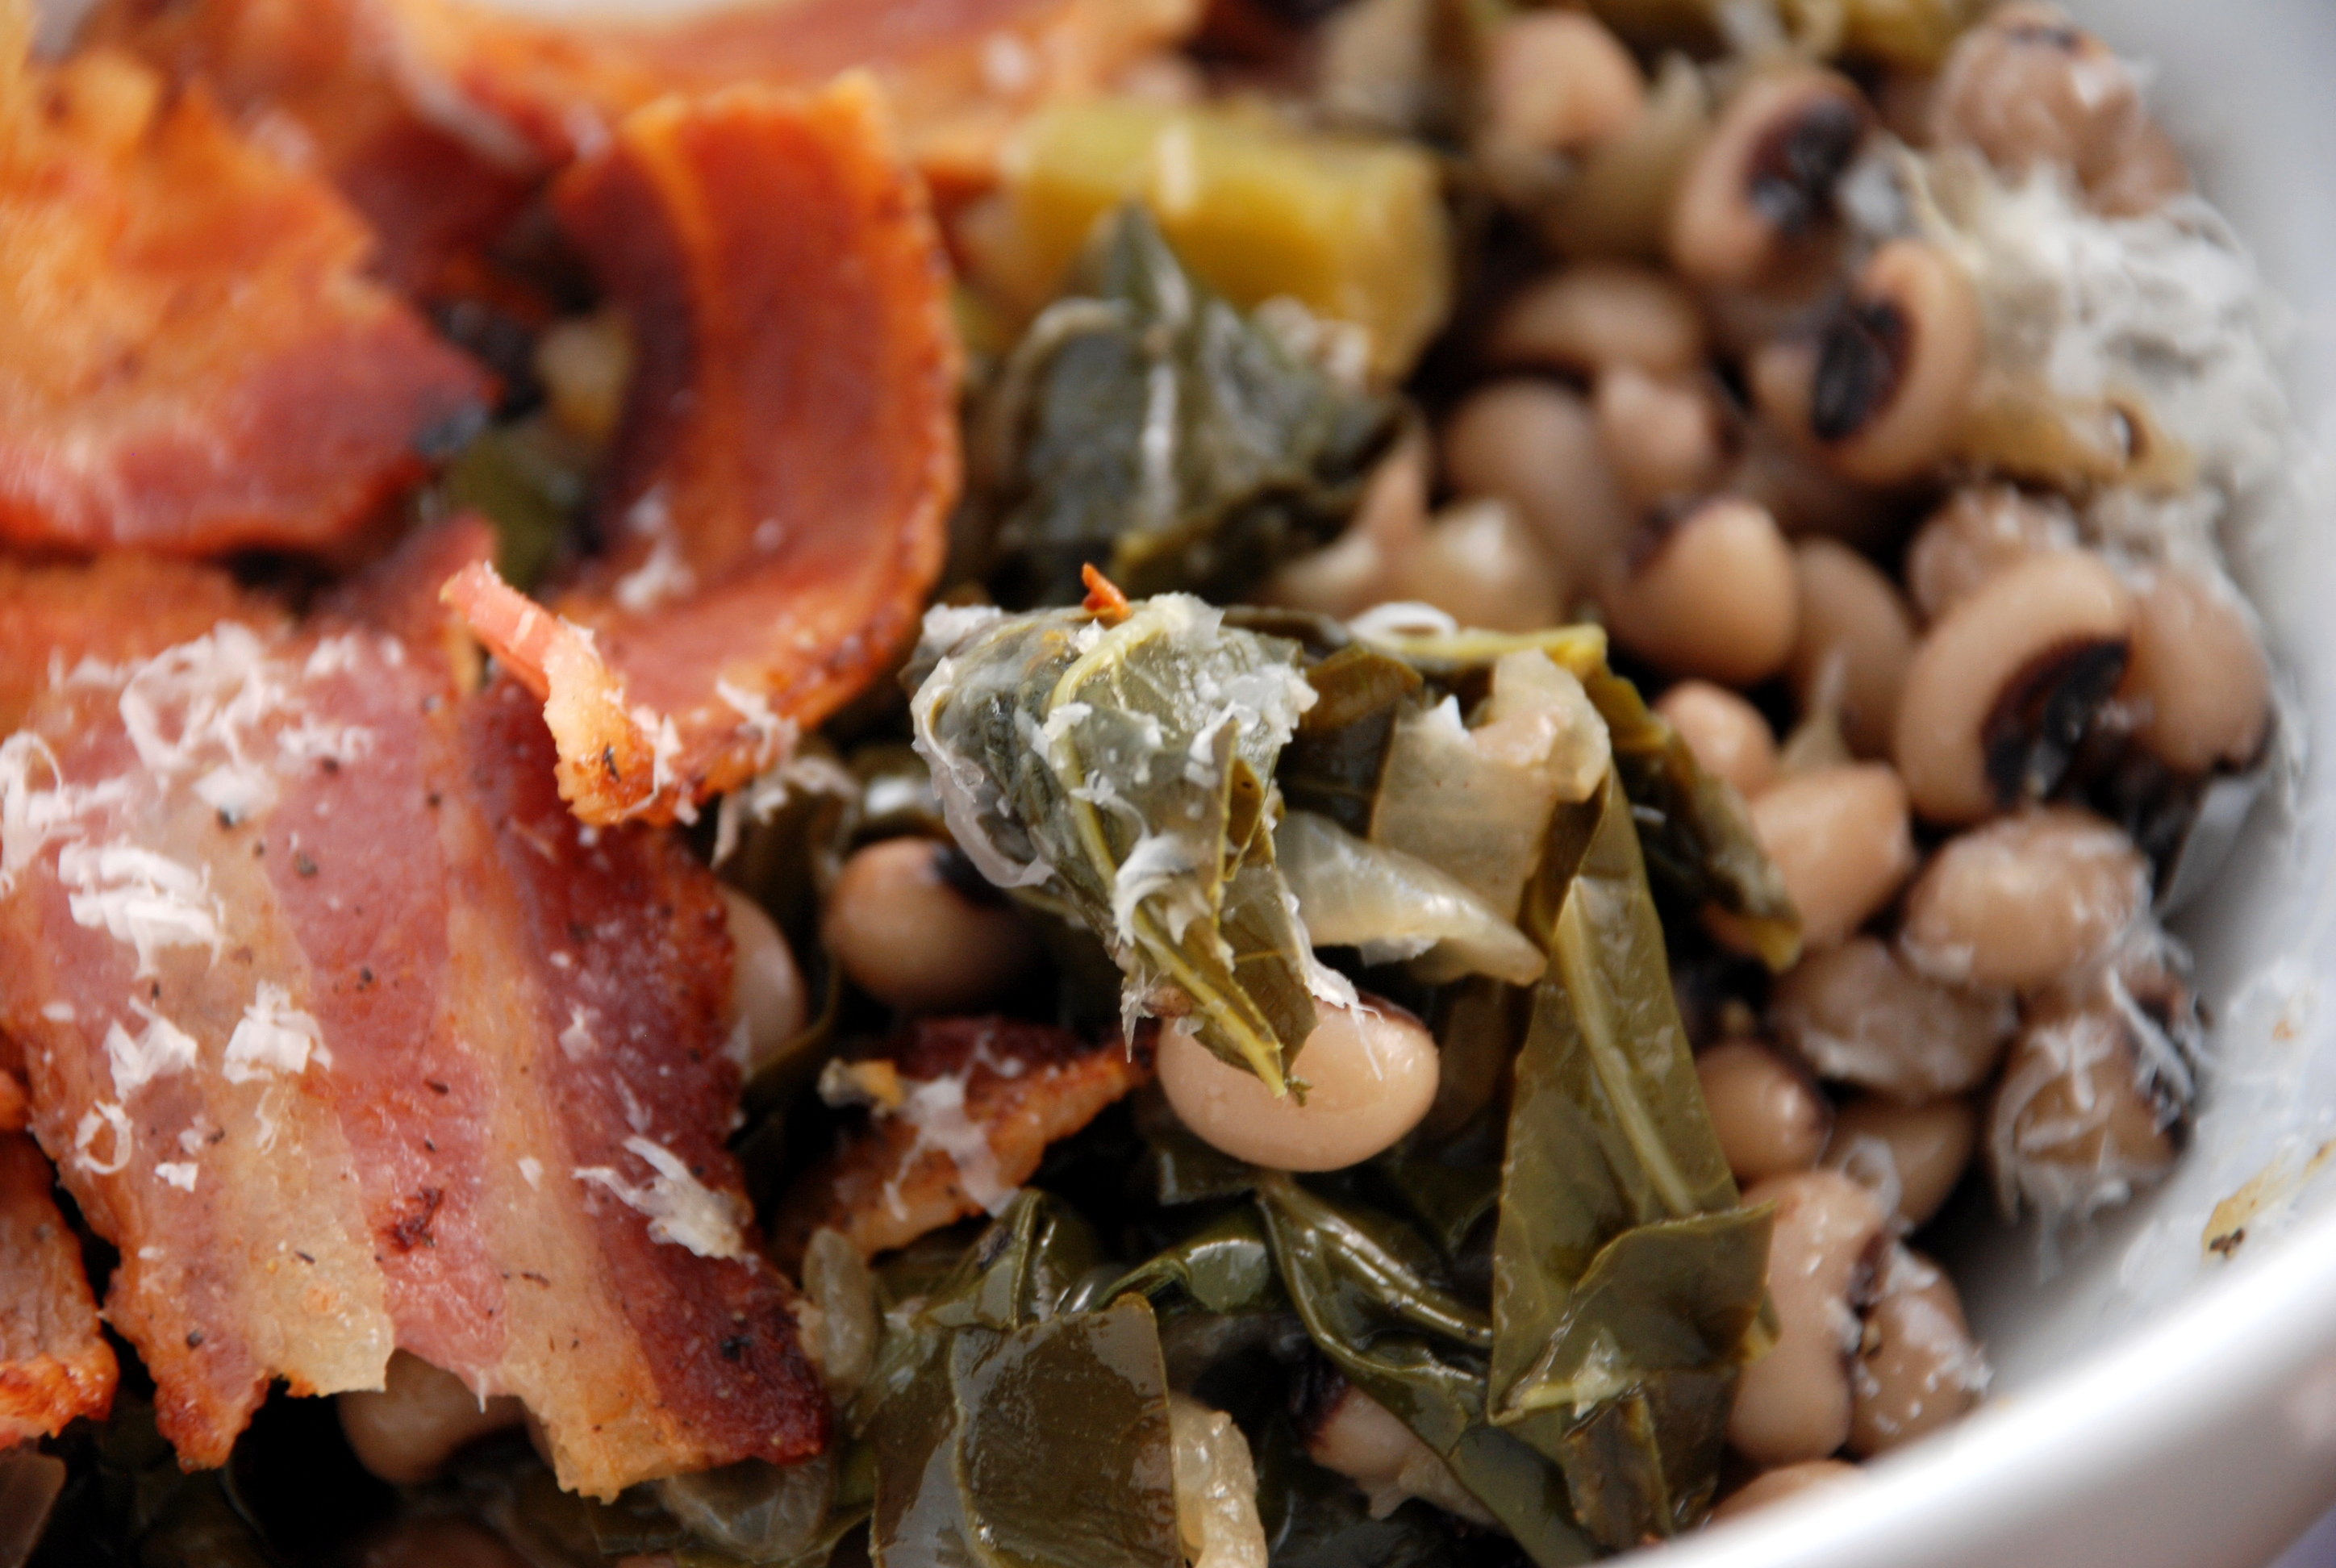 File:Hoppin' John.jpg - Wikimedia Commons